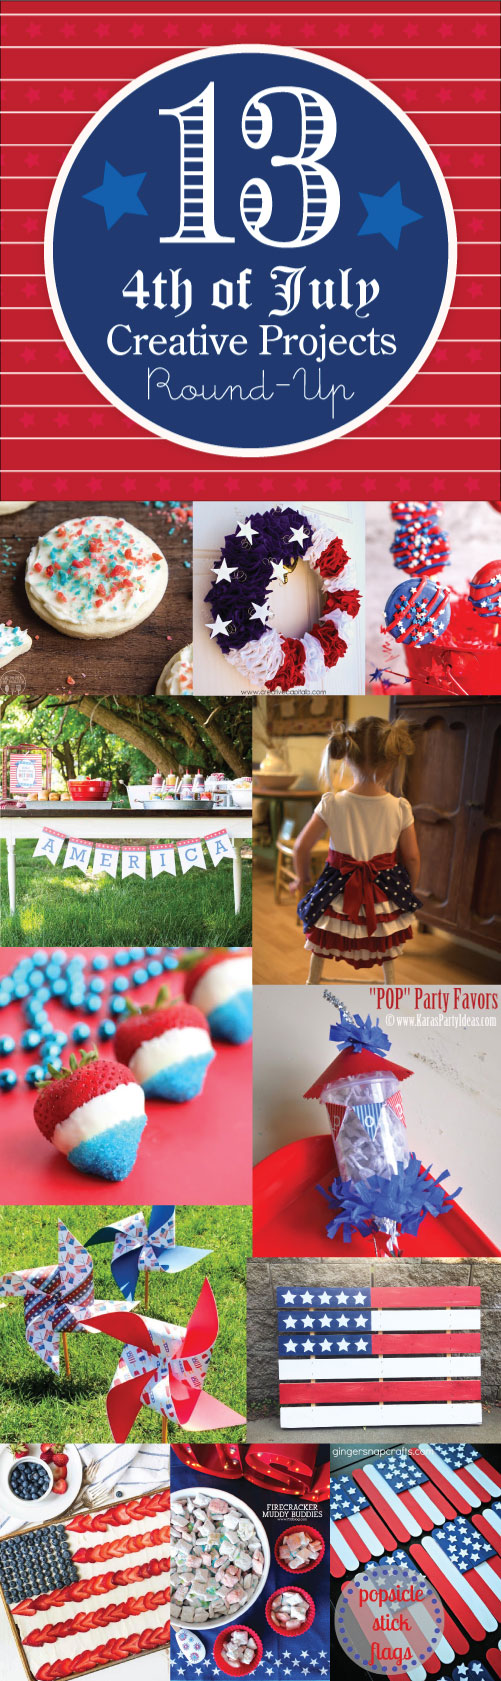 Fourth of July DIY Projects